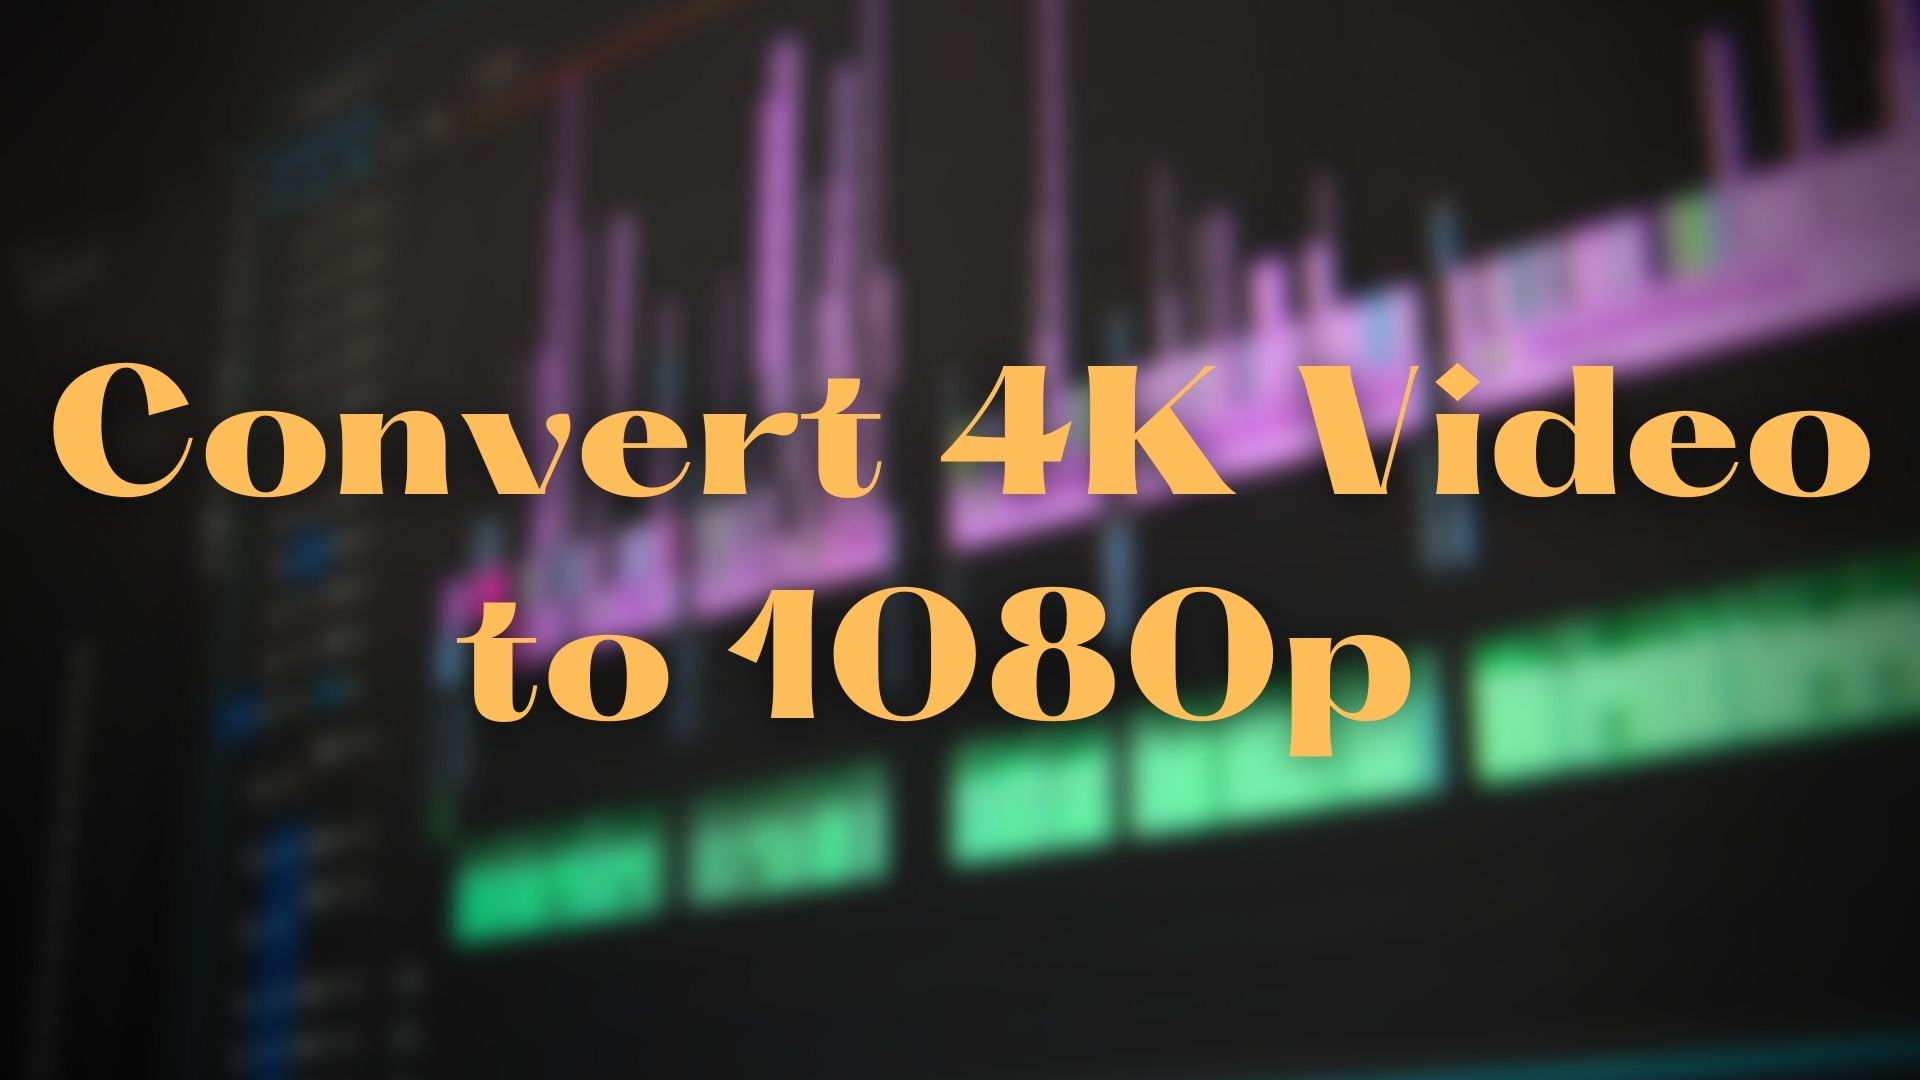 How To Convert 4K Video to 1080p for Free